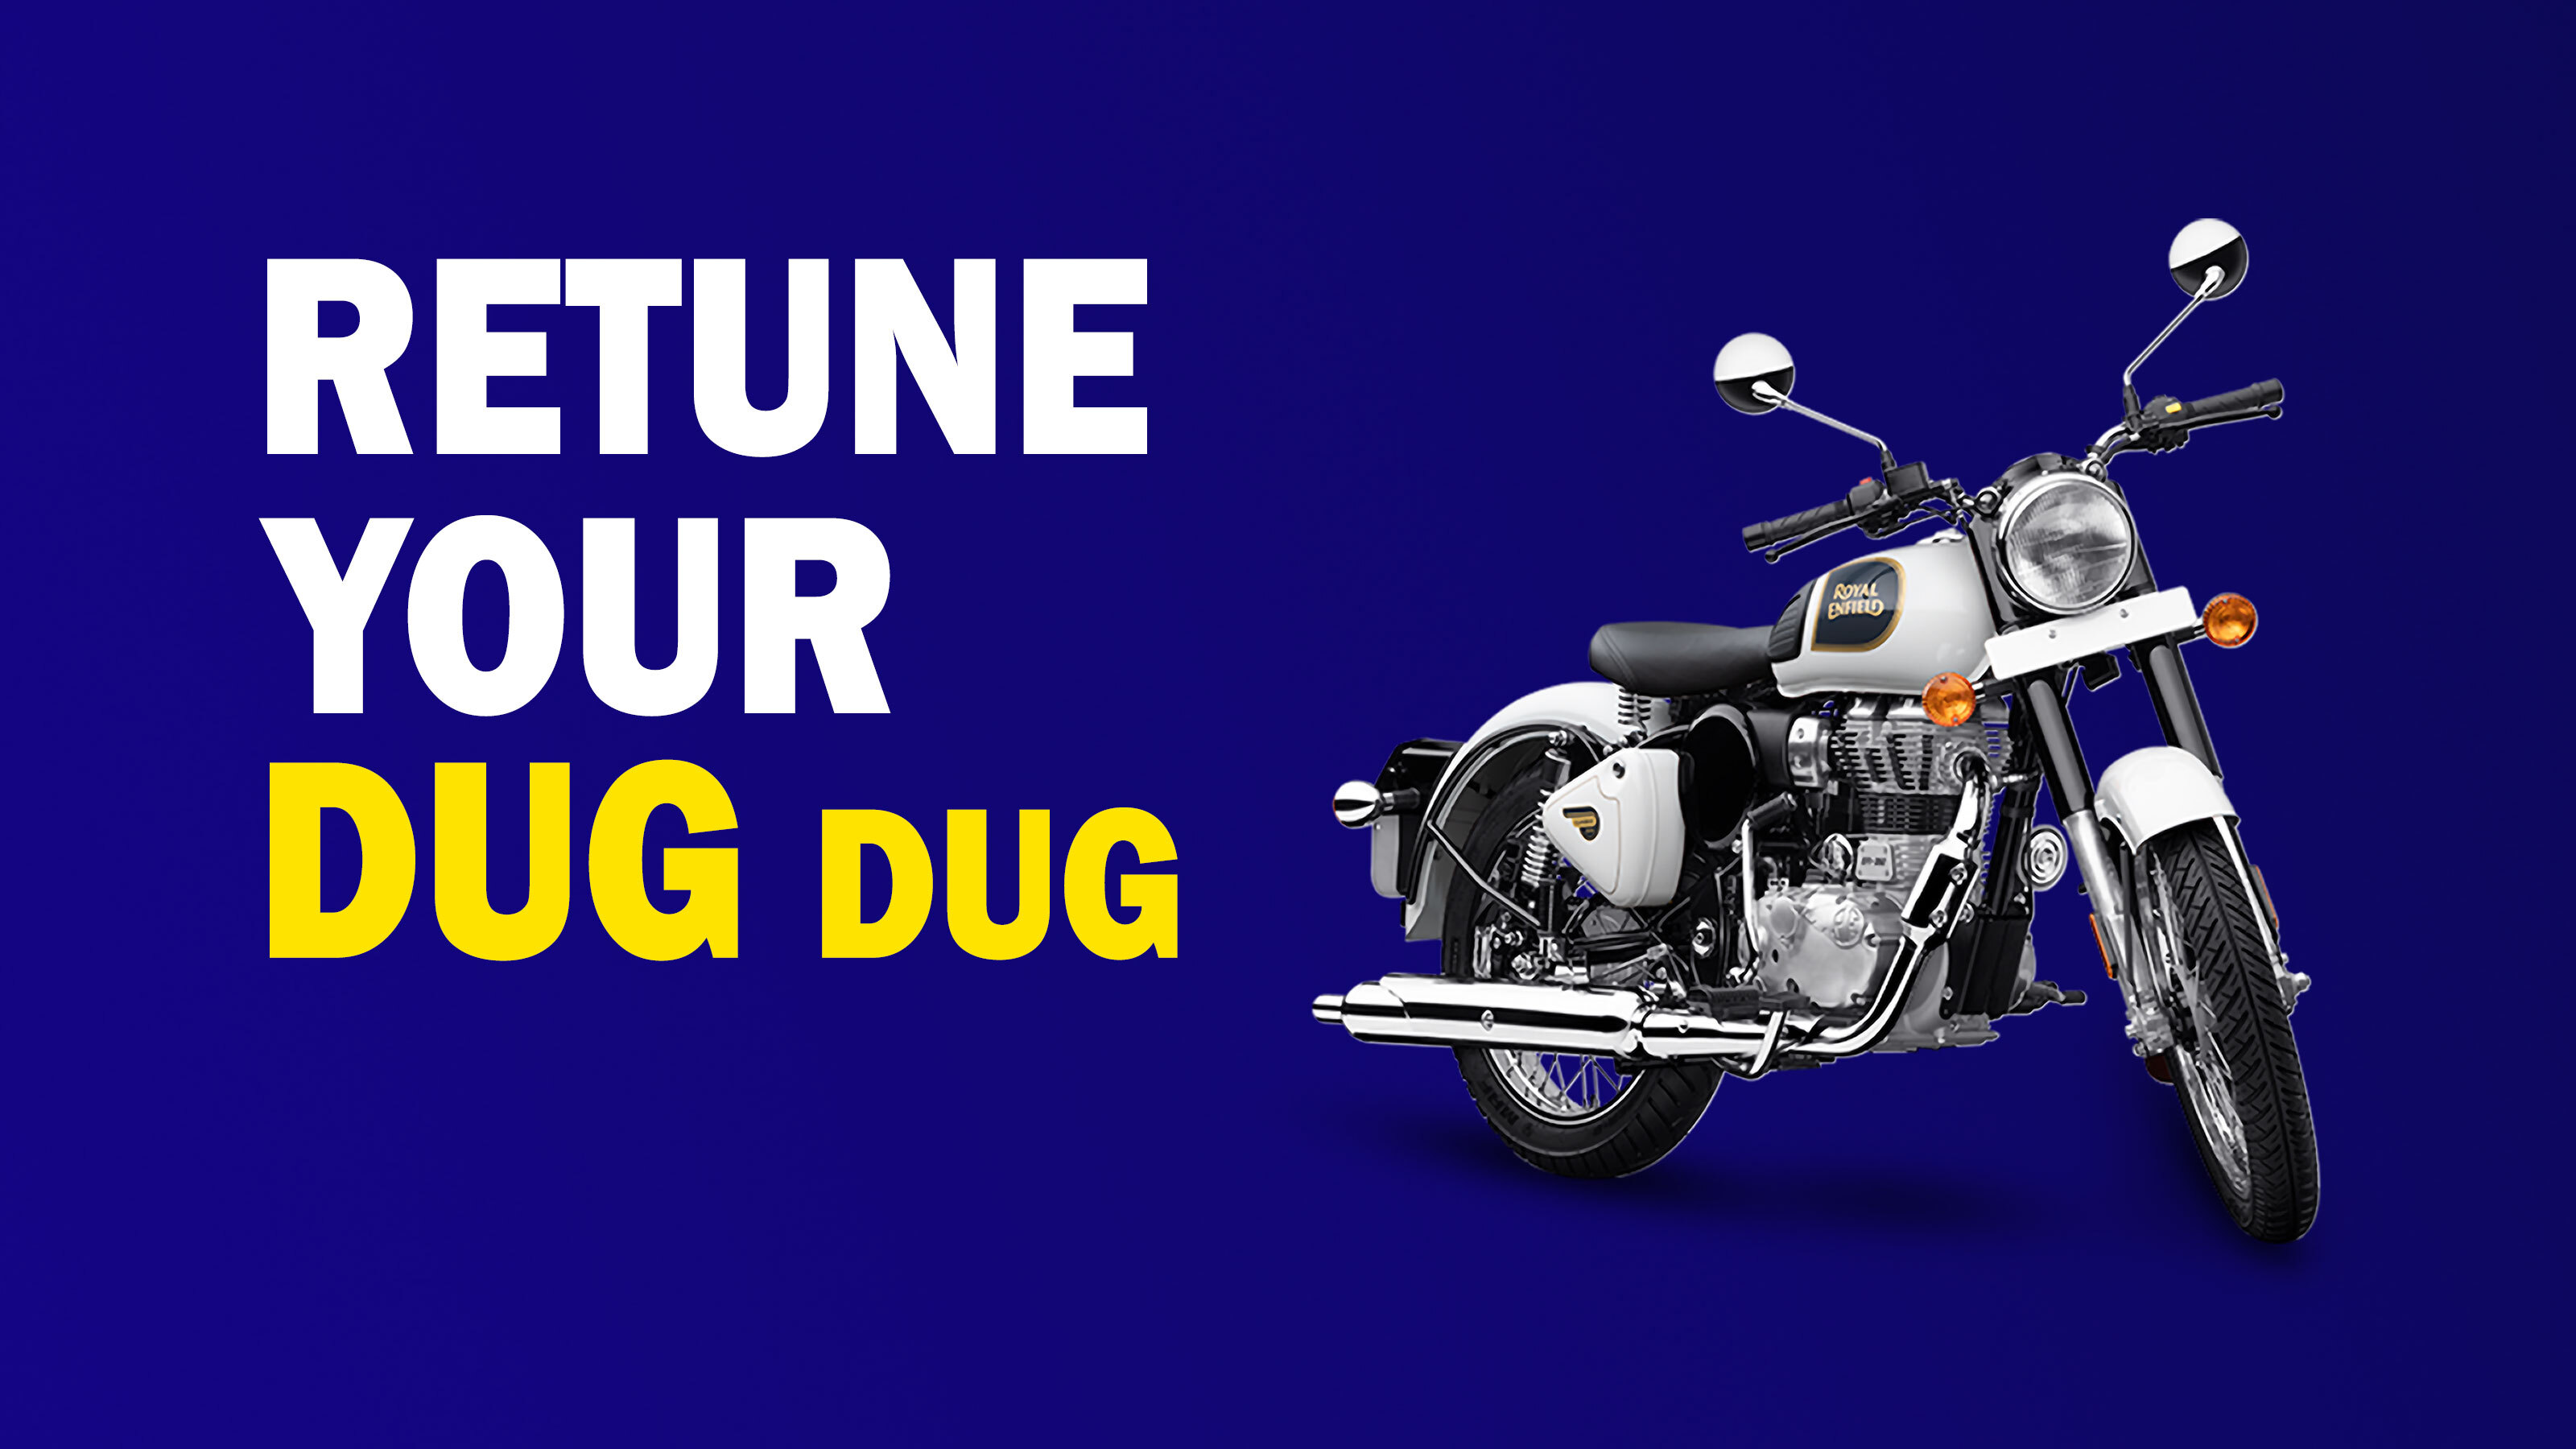 Offer for Royal Enfield ( Your Dug Dug ) - Limited Time Only